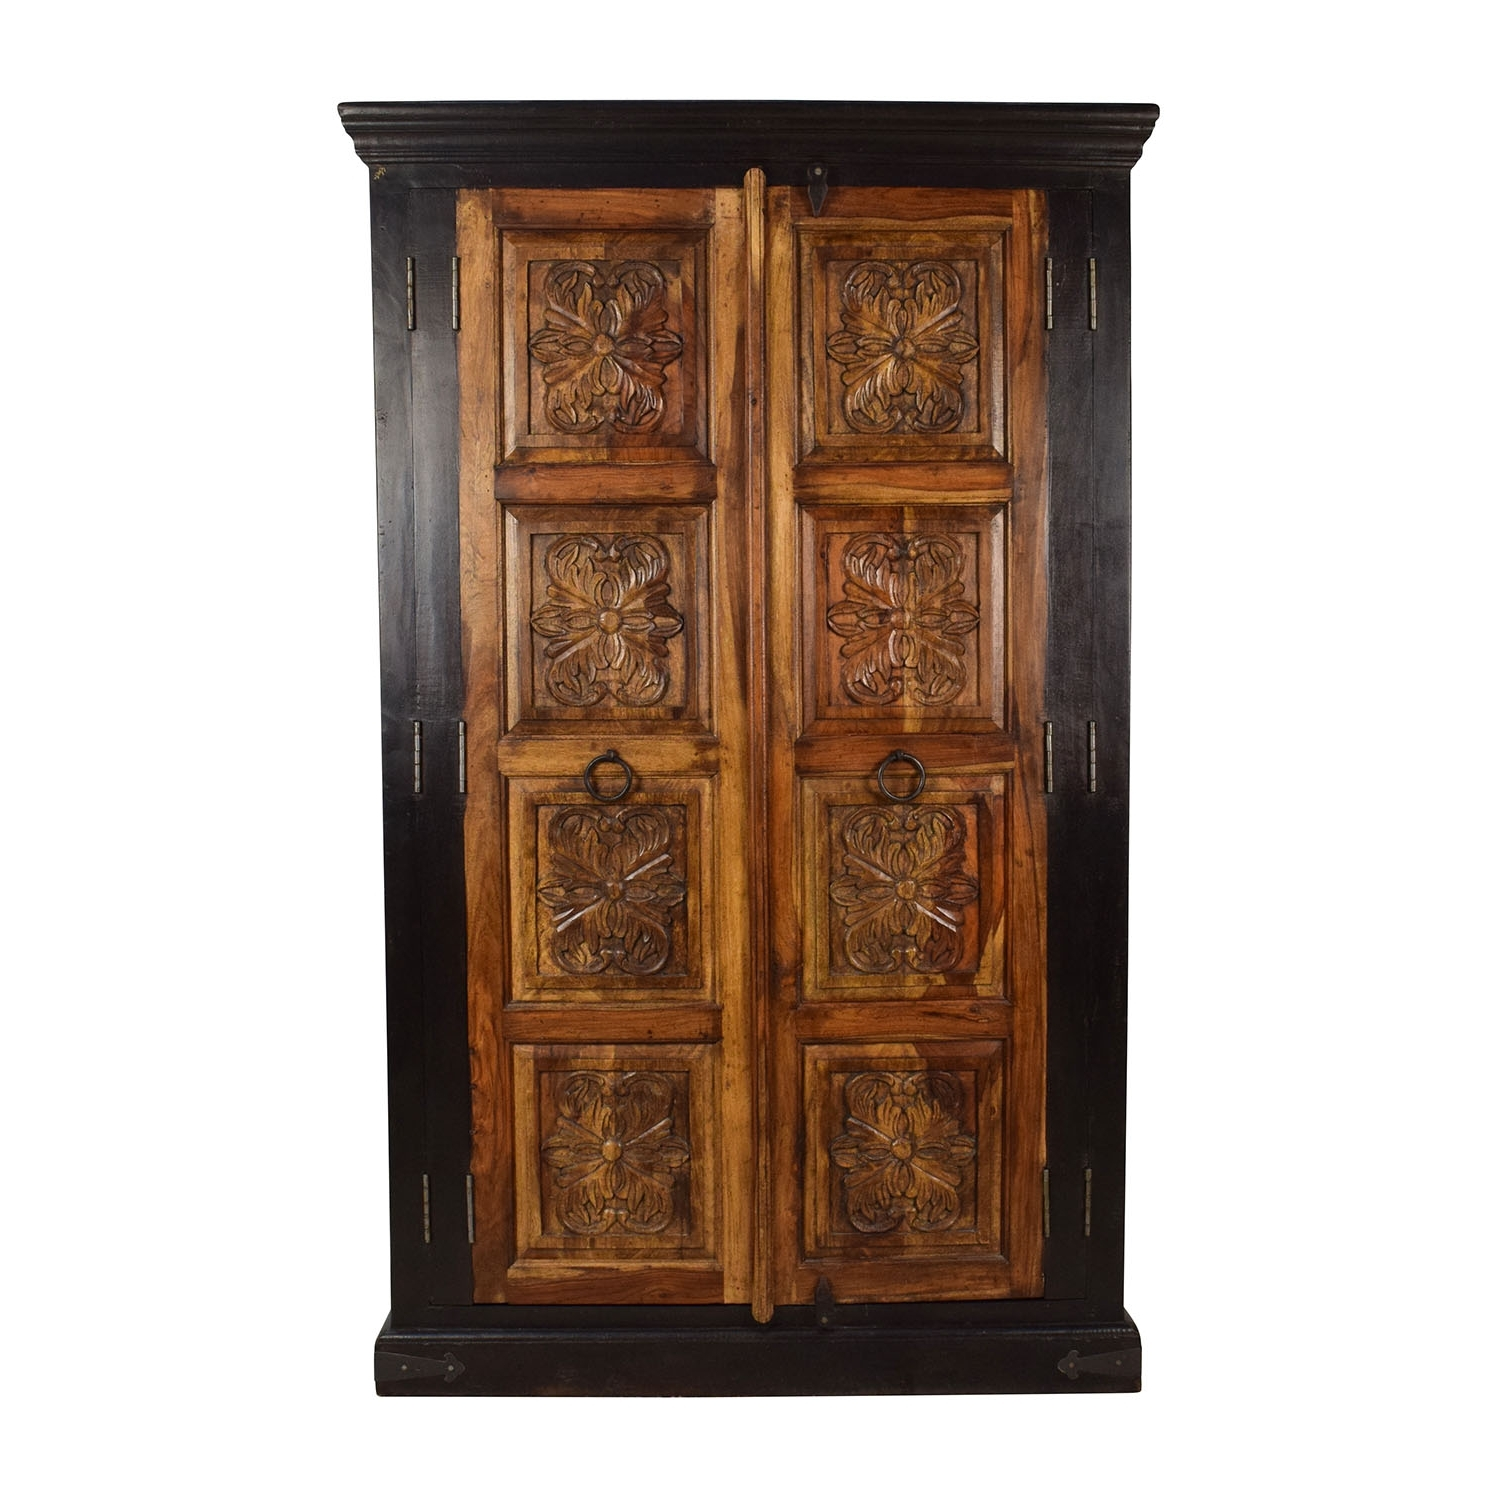 [%74% Off – Large Carved Wooden Armoire / Storage Throughout Well Known Cheap Wood Wardrobes|Cheap Wood Wardrobes With Regard To Fashionable 74% Off – Large Carved Wooden Armoire / Storage|Widely Used Cheap Wood Wardrobes In 74% Off – Large Carved Wooden Armoire / Storage|Famous 74% Off – Large Carved Wooden Armoire / Storage In Cheap Wood Wardrobes%] (View 1 of 15)